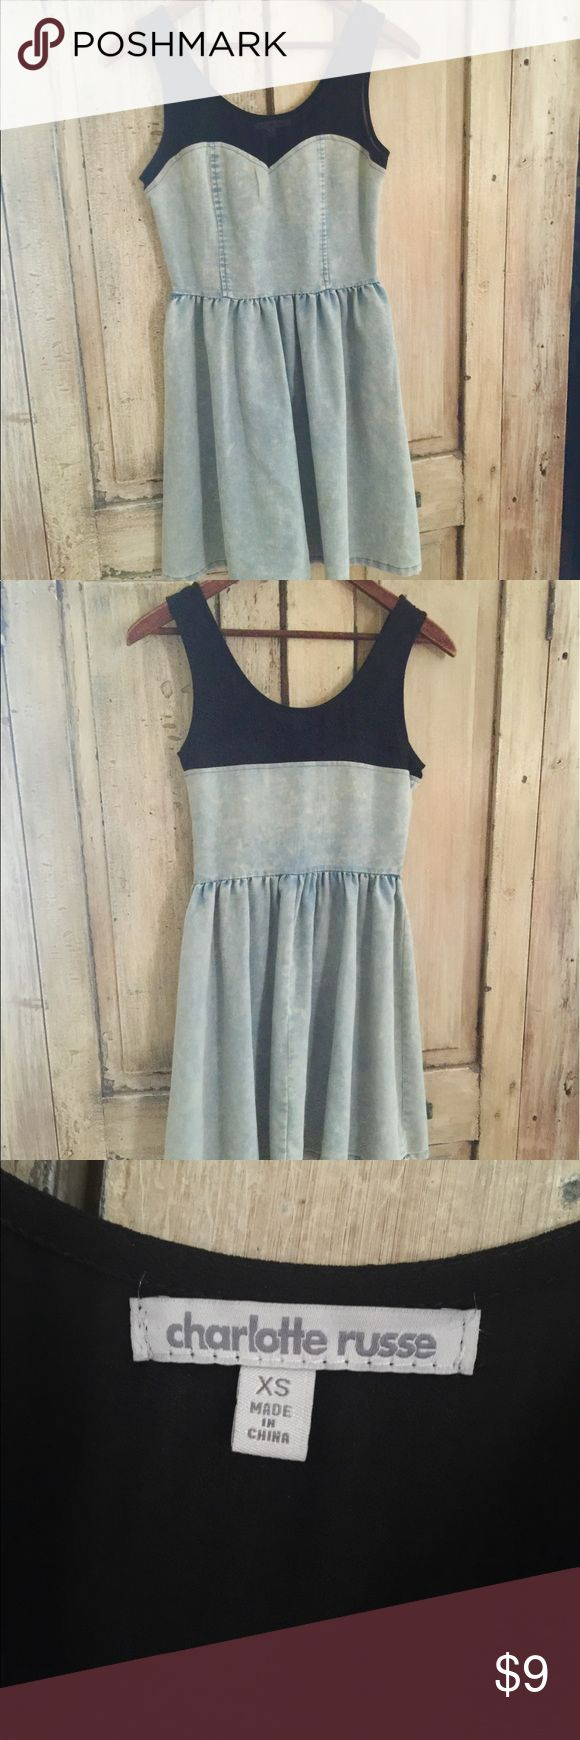 Charlotte Ruse ... Summer dress Charlotte Ruse...side zipper..denim look bottom with sheer black on top ... Small ... Excellent condition...smoke FREE home... Please ask questions I want you to be happy with your purchase ... Thank you for looking Charlotte Russe Dresses Midi